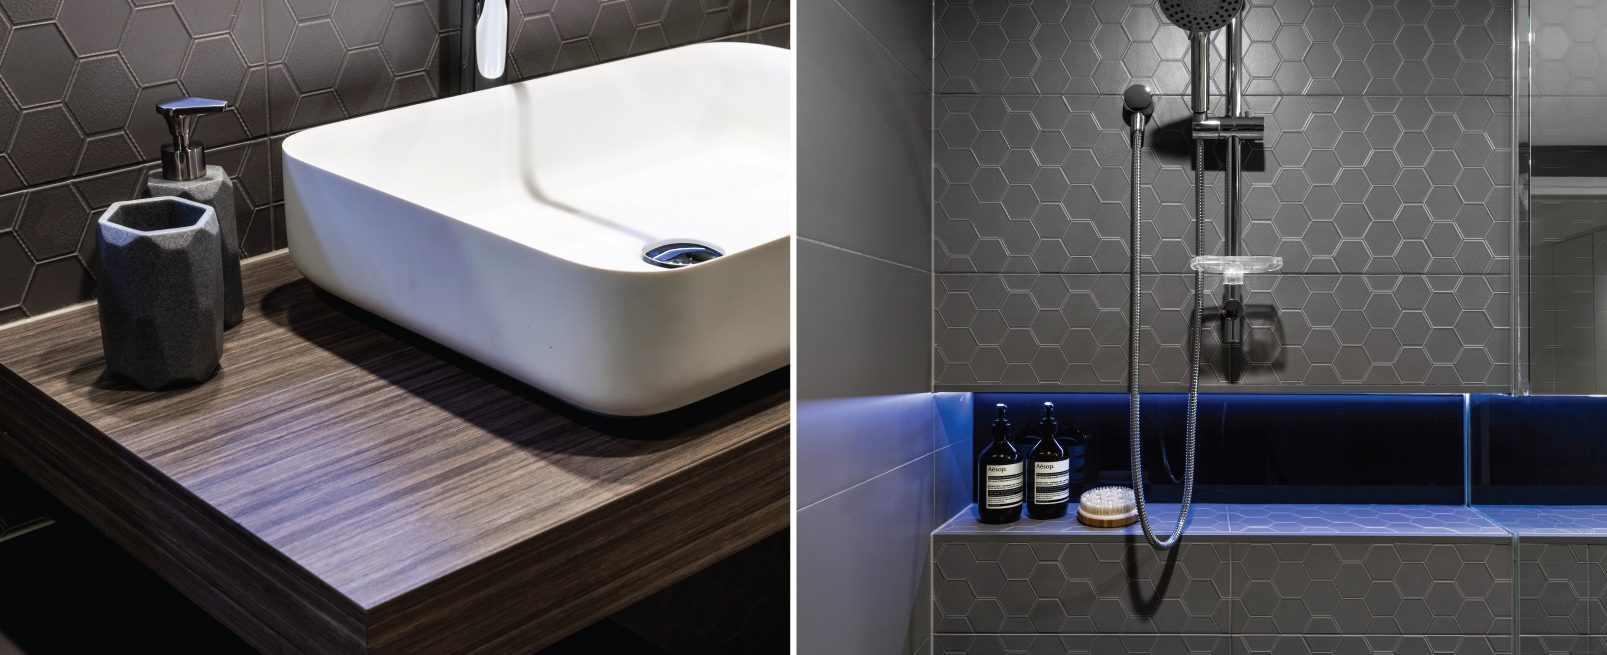 Bathroom Renovation Design brisbane hexagon mosaic tiles